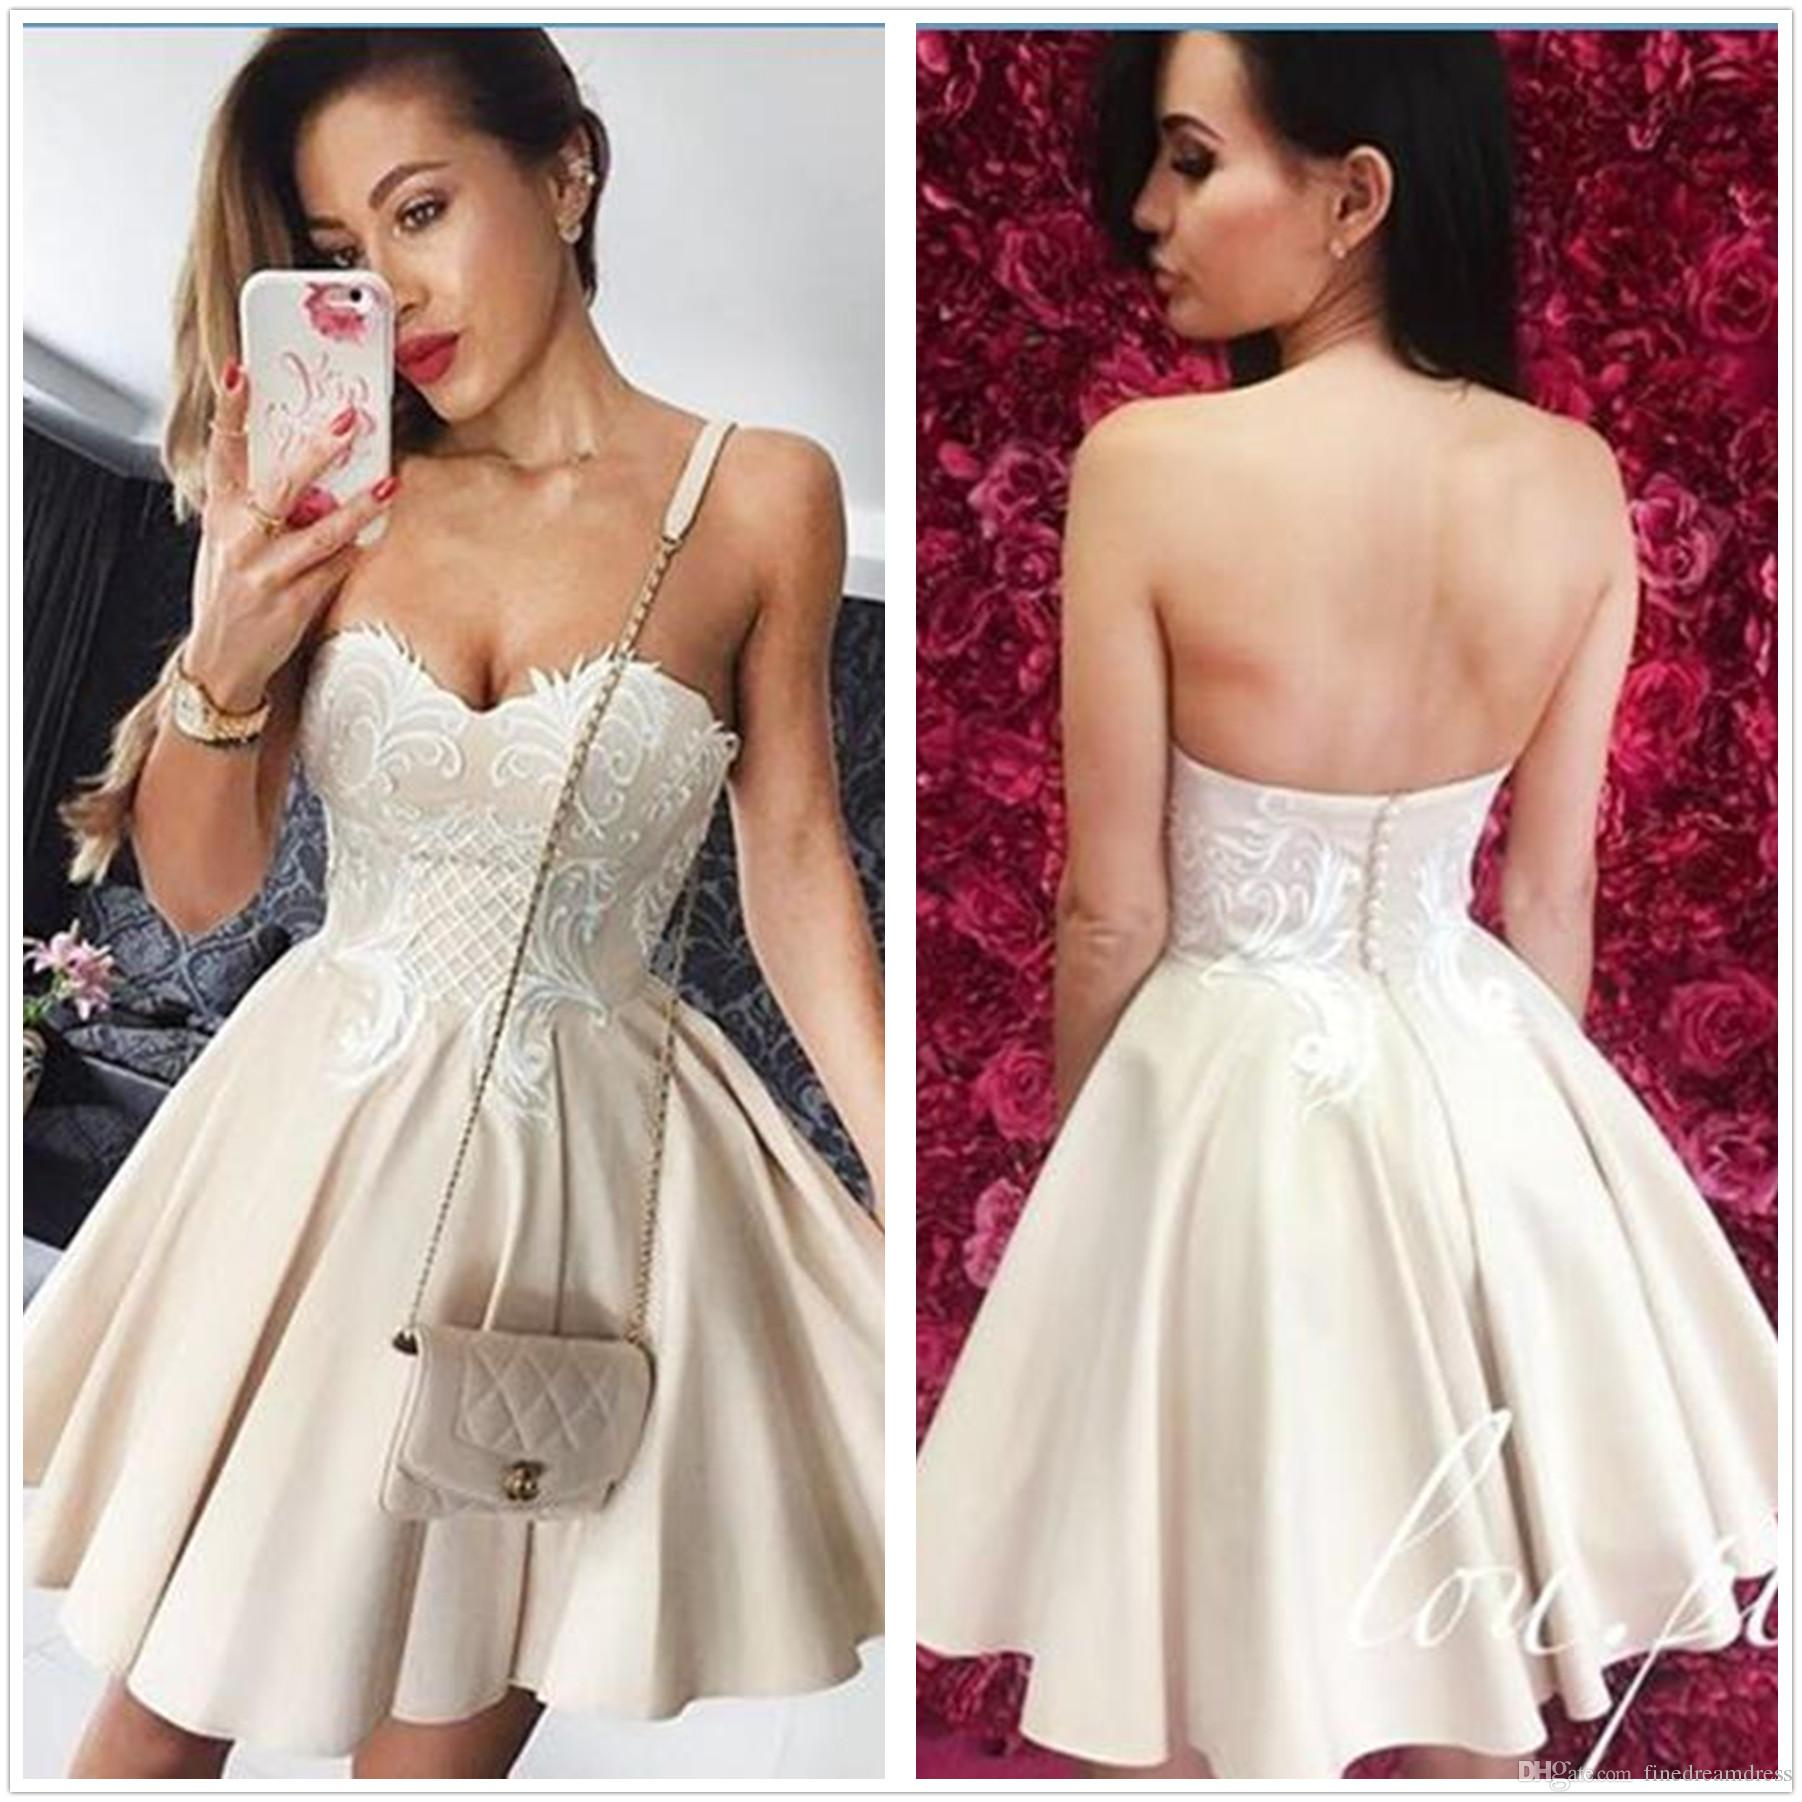 9f68cd96b78 2018 New Sweetheart Satin A Line Homecoming Dresses Lace Applique Ruffle Knee  Length Formal Party Cocktail Prom Dresses Dress Gowns Dresses For From ...